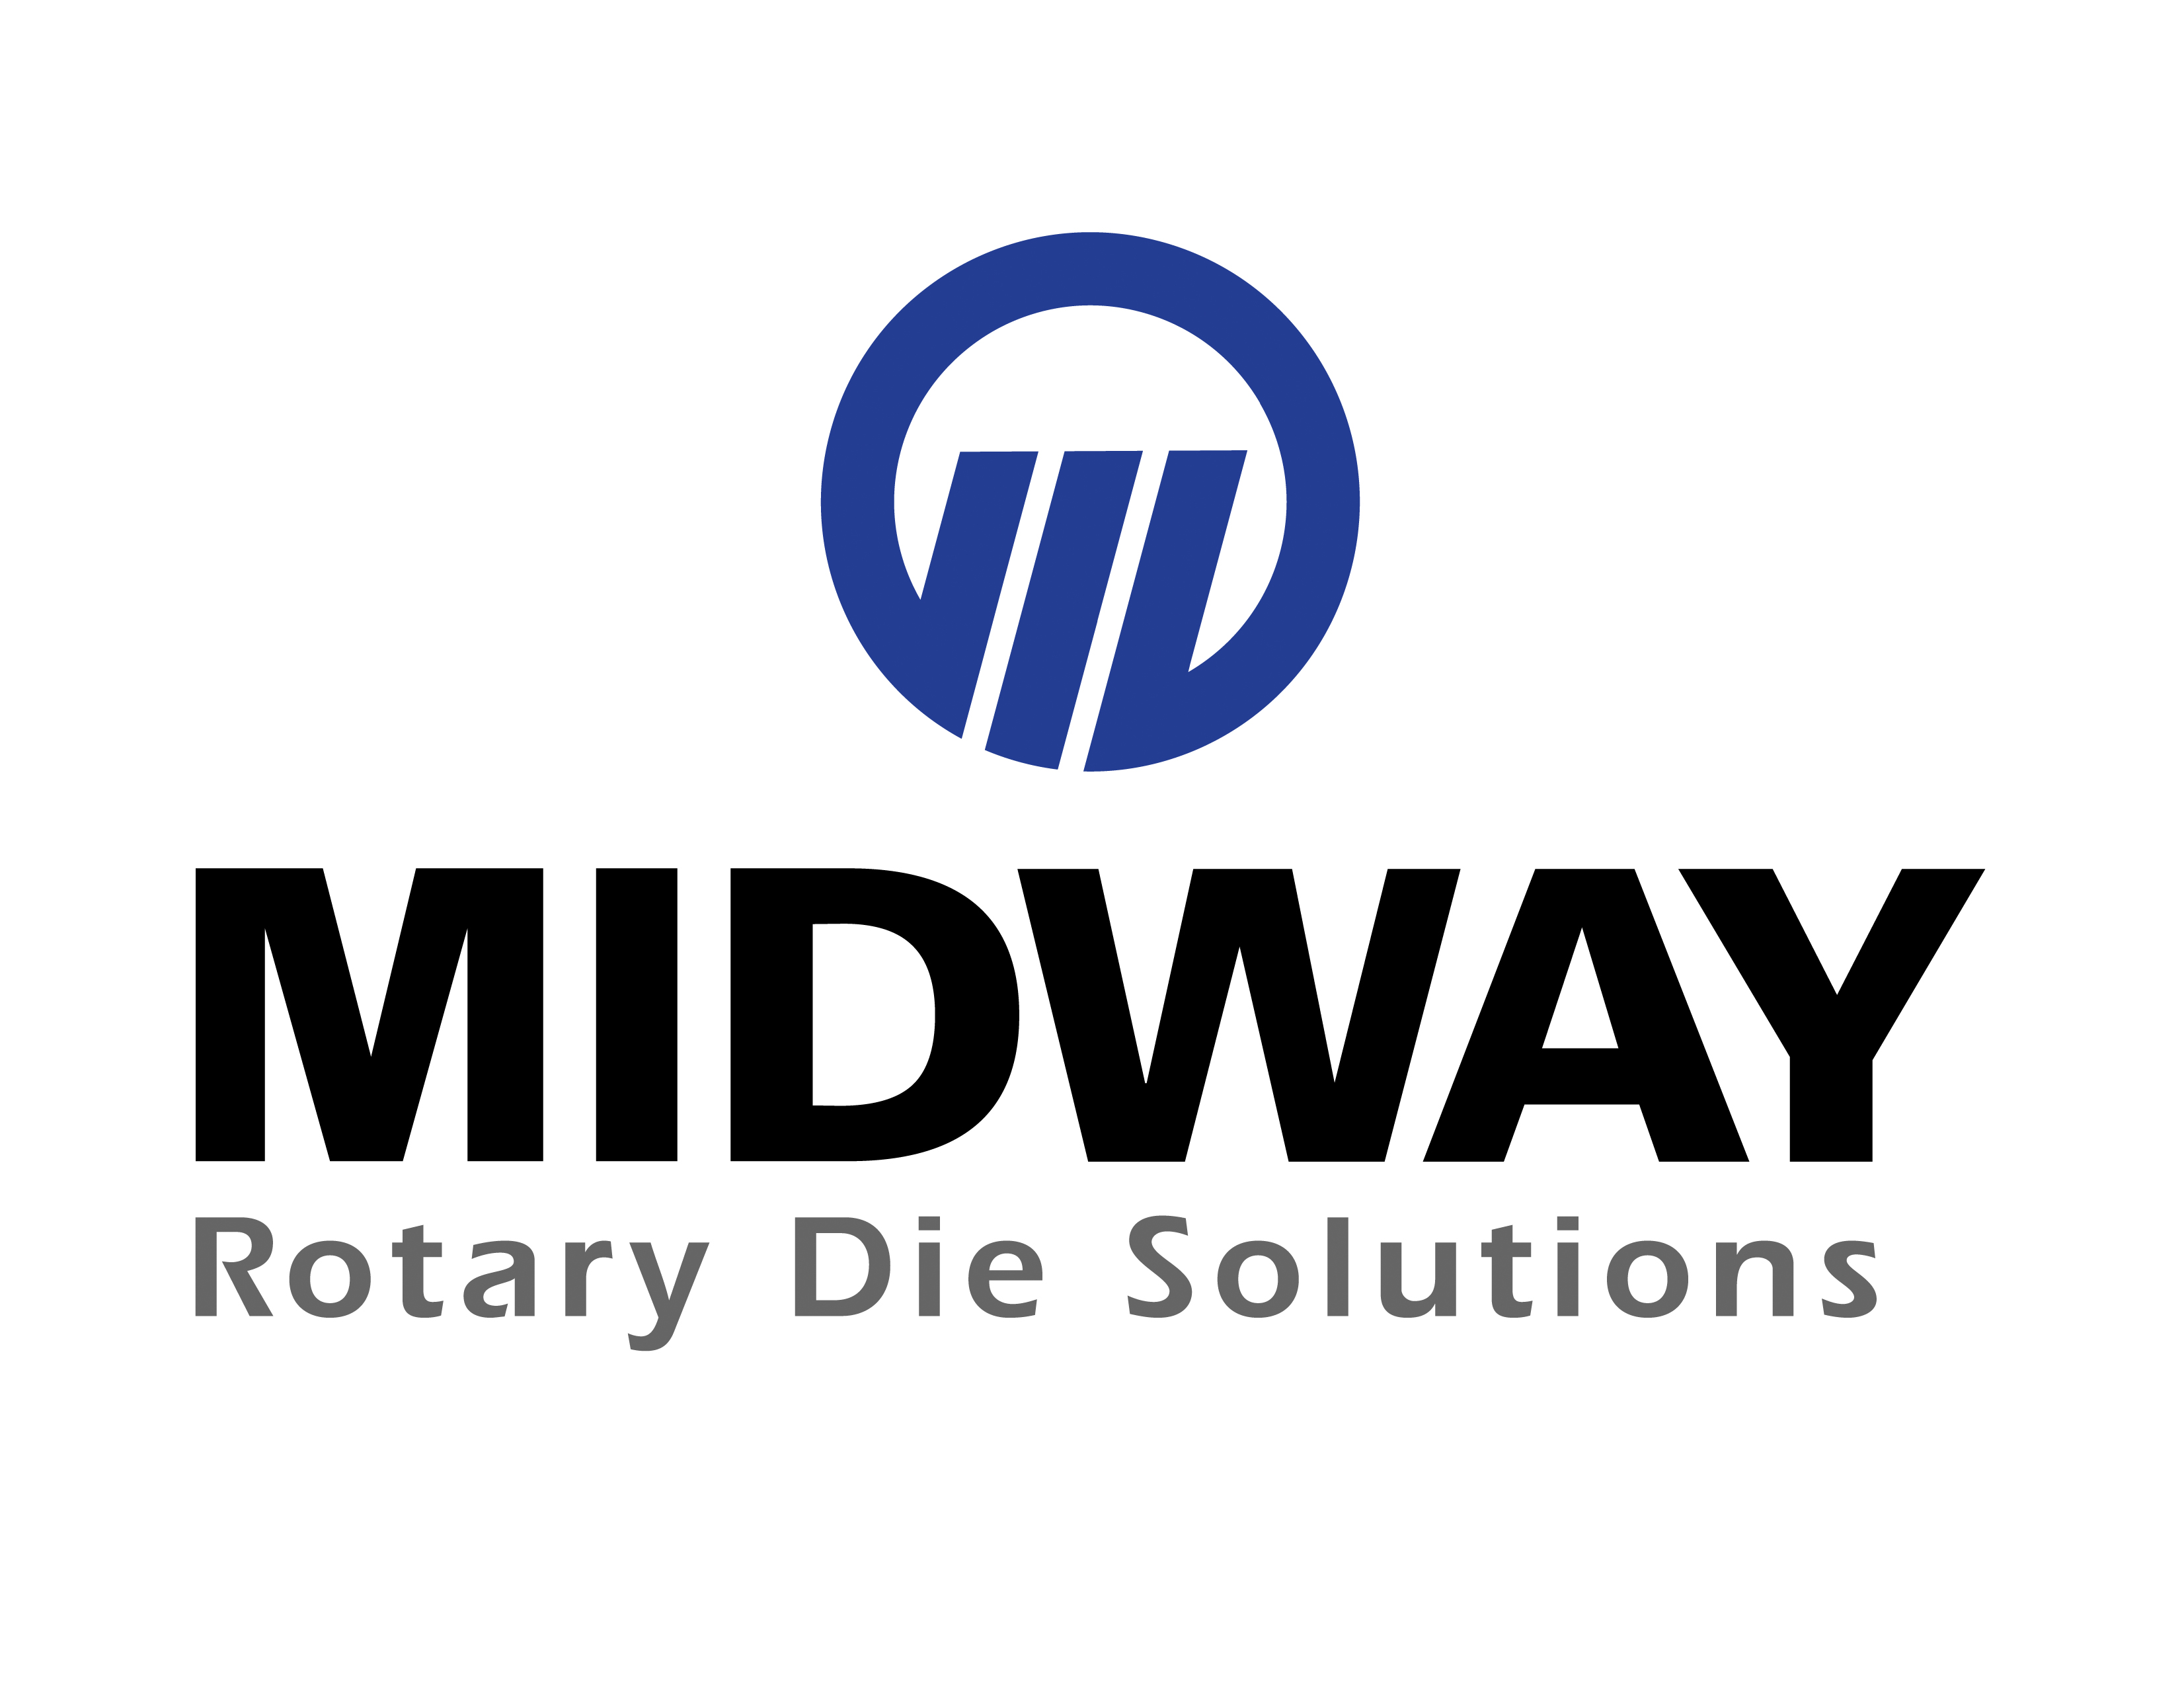 Midway Rotary Die Solutions in Williamston, MI. Tool steel rotary cutting dies & die resharpening & repair services for the converting, automotive, medical, specialty, folding carton, food, electronics & label markets.